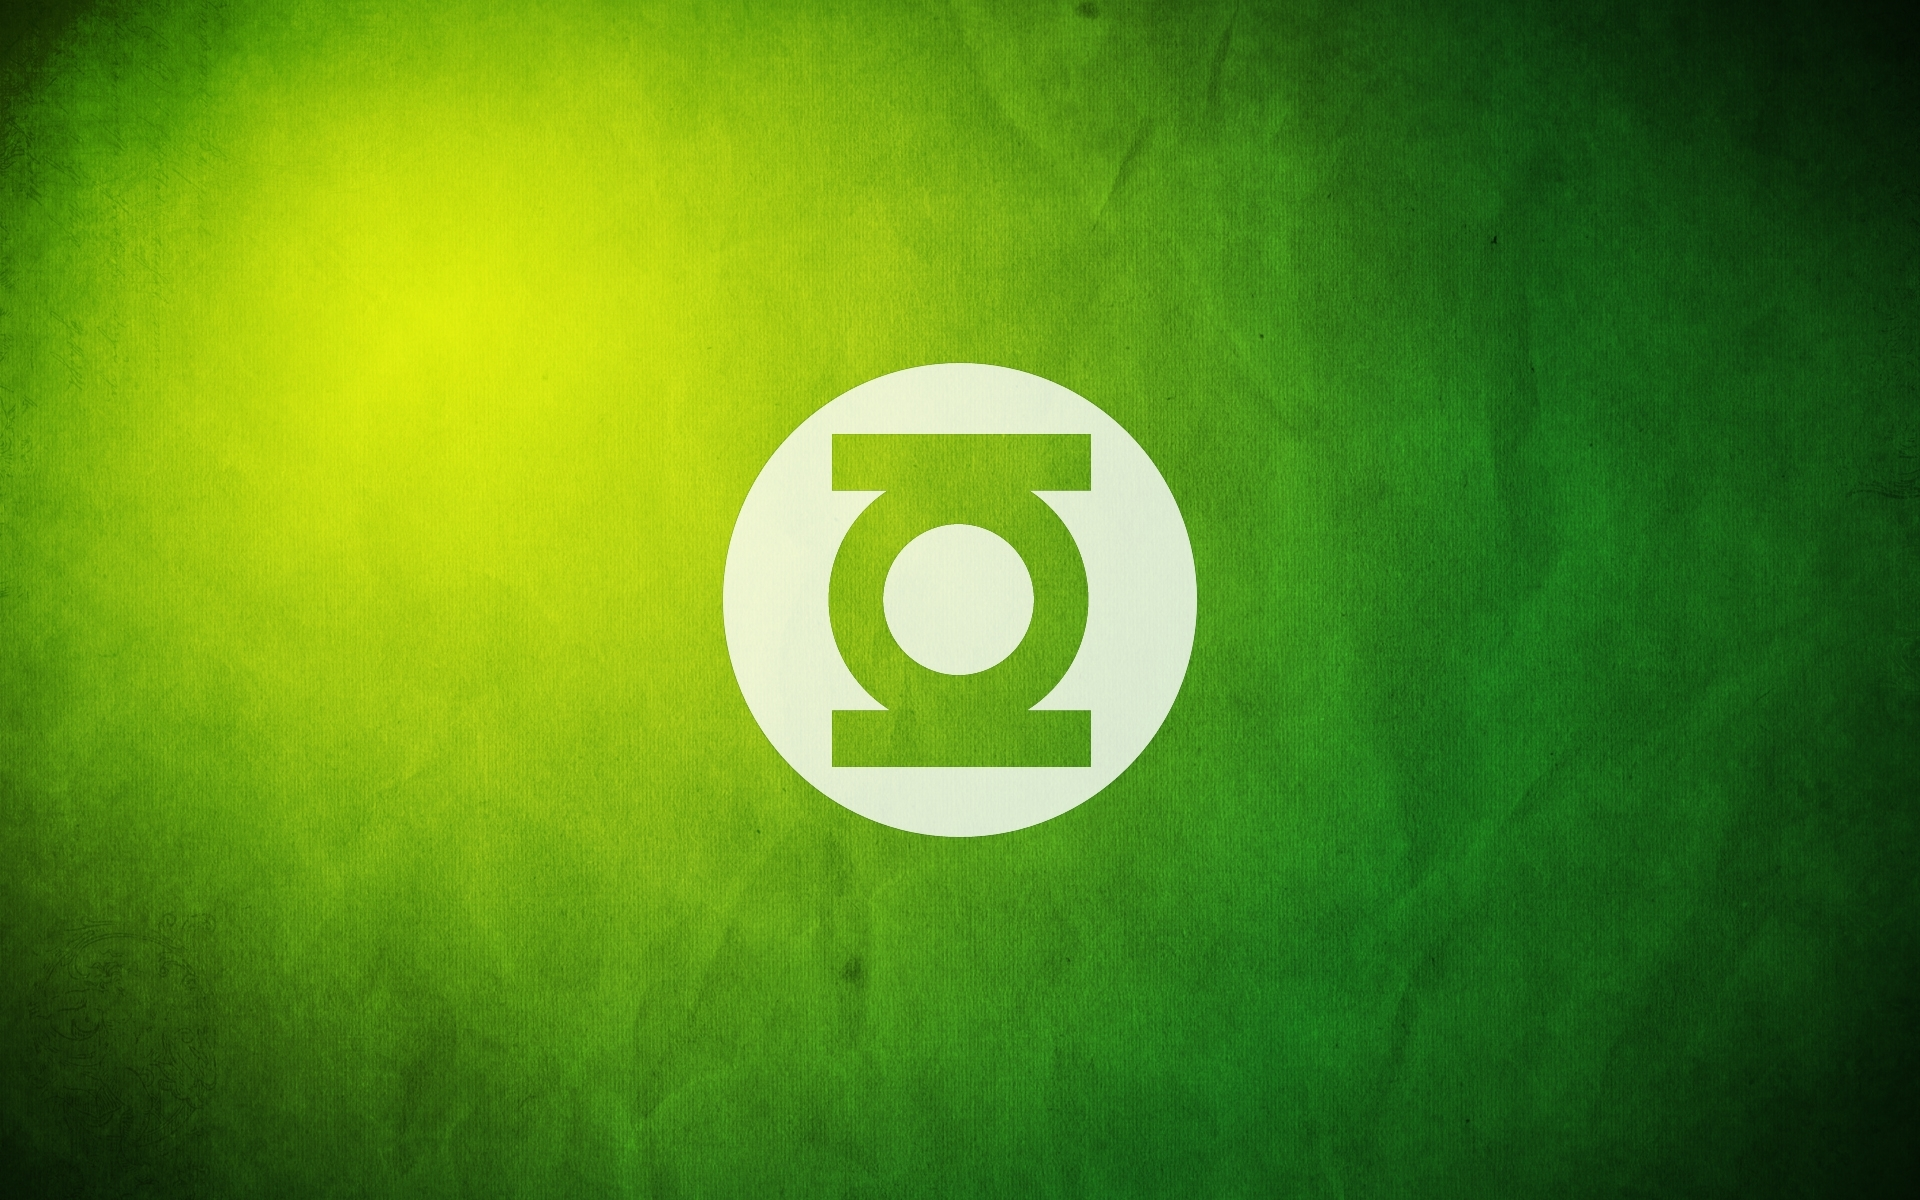 green lantern logo wallpaper 23536 1920x1200 px ~ hdwallsource